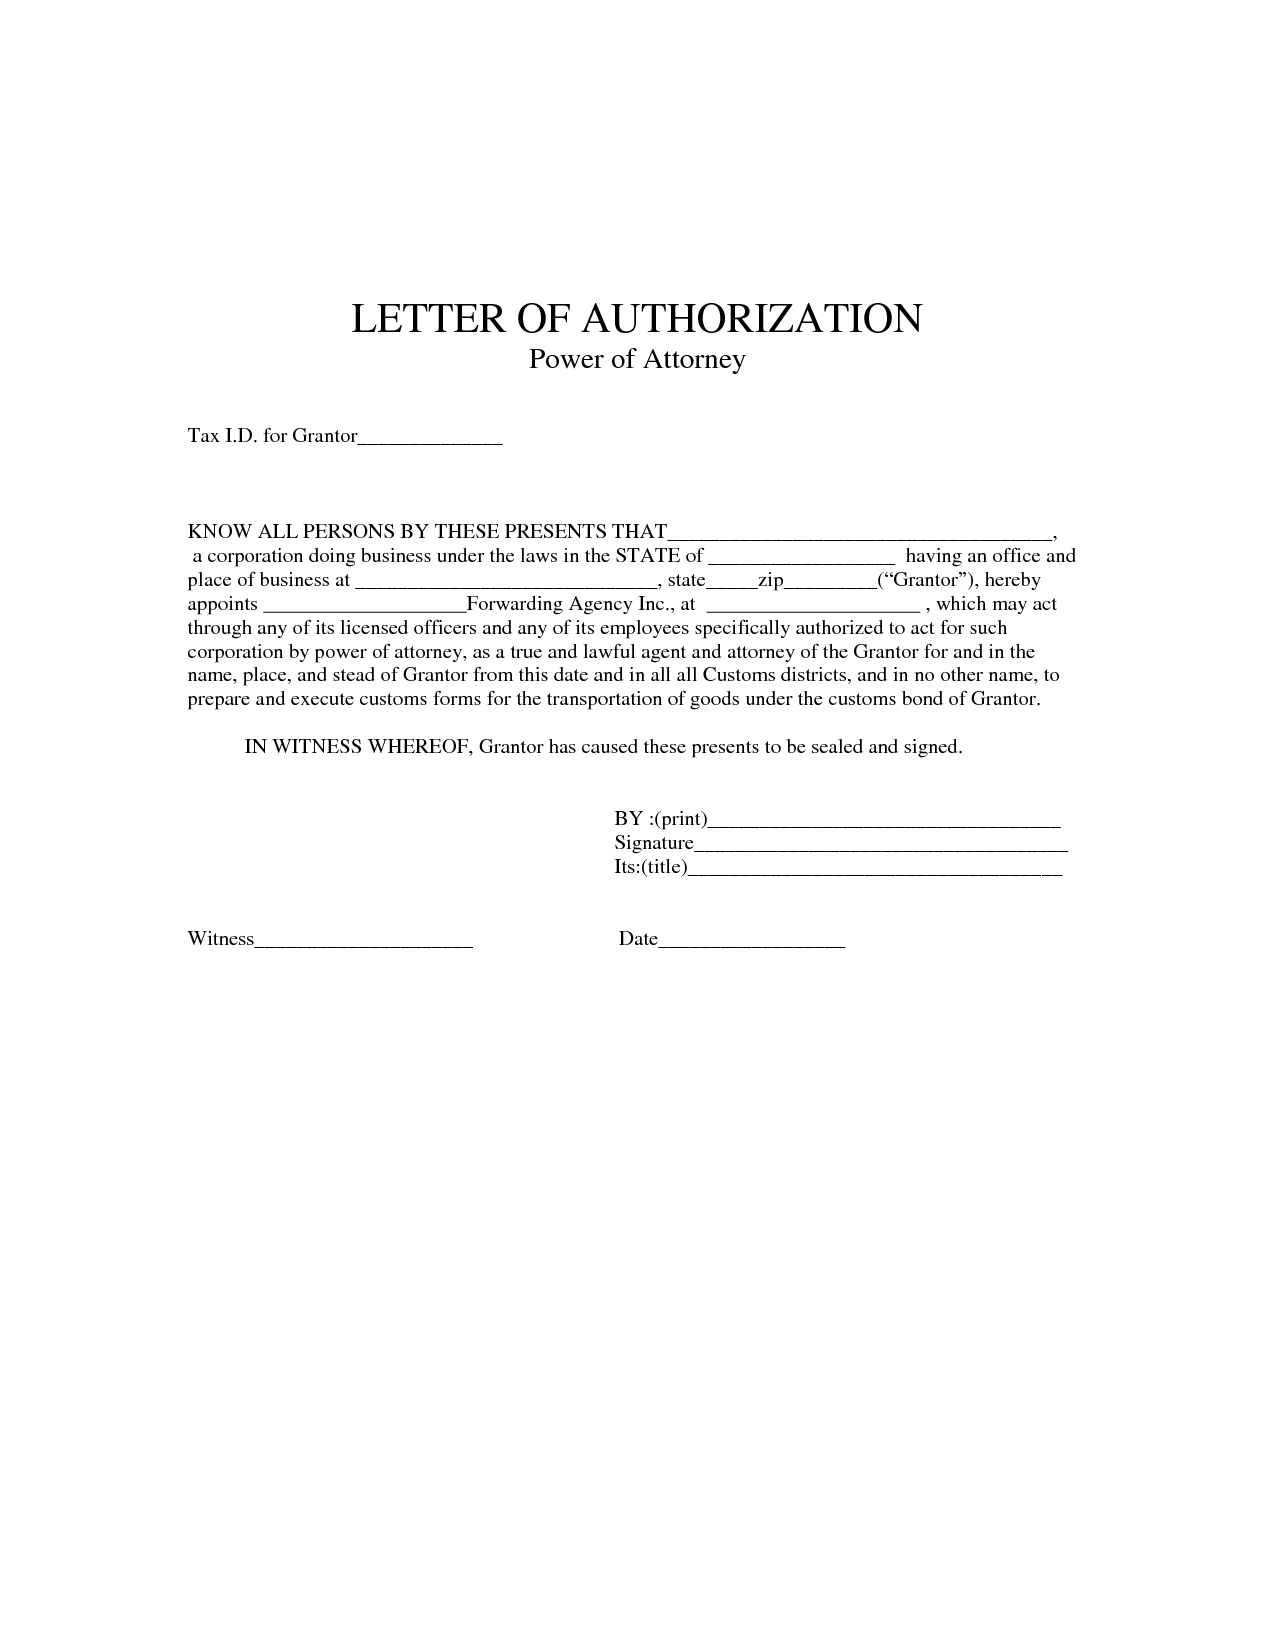 Power Authorization Letter Sample Employment Verification Form